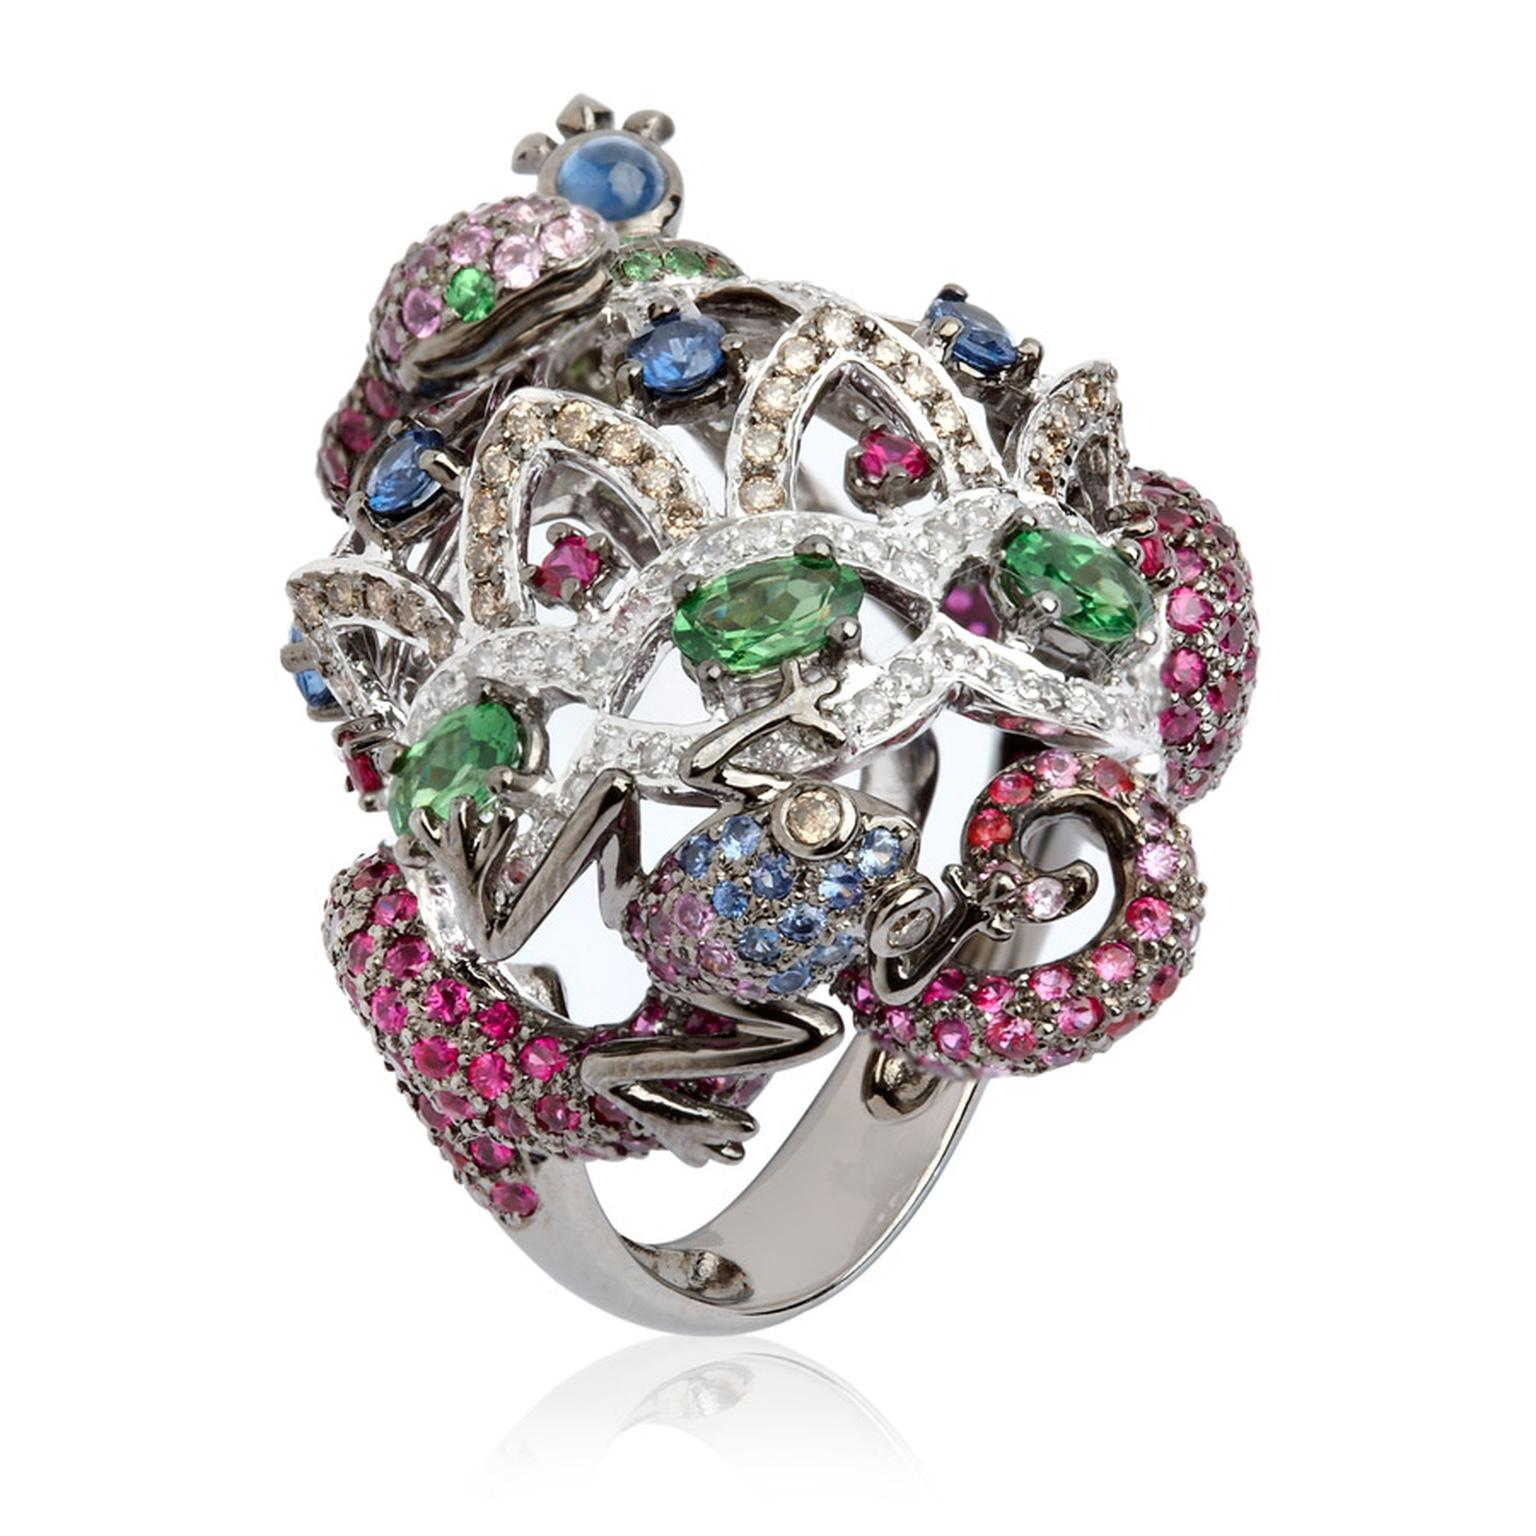 Wendy-Yue-Fantasie--Jubilee-18ct-white-gold-diamond-sapphire-ruby-and-garnet-Serpent-ring-by-Wendy-Yue-for-Annoushka_03